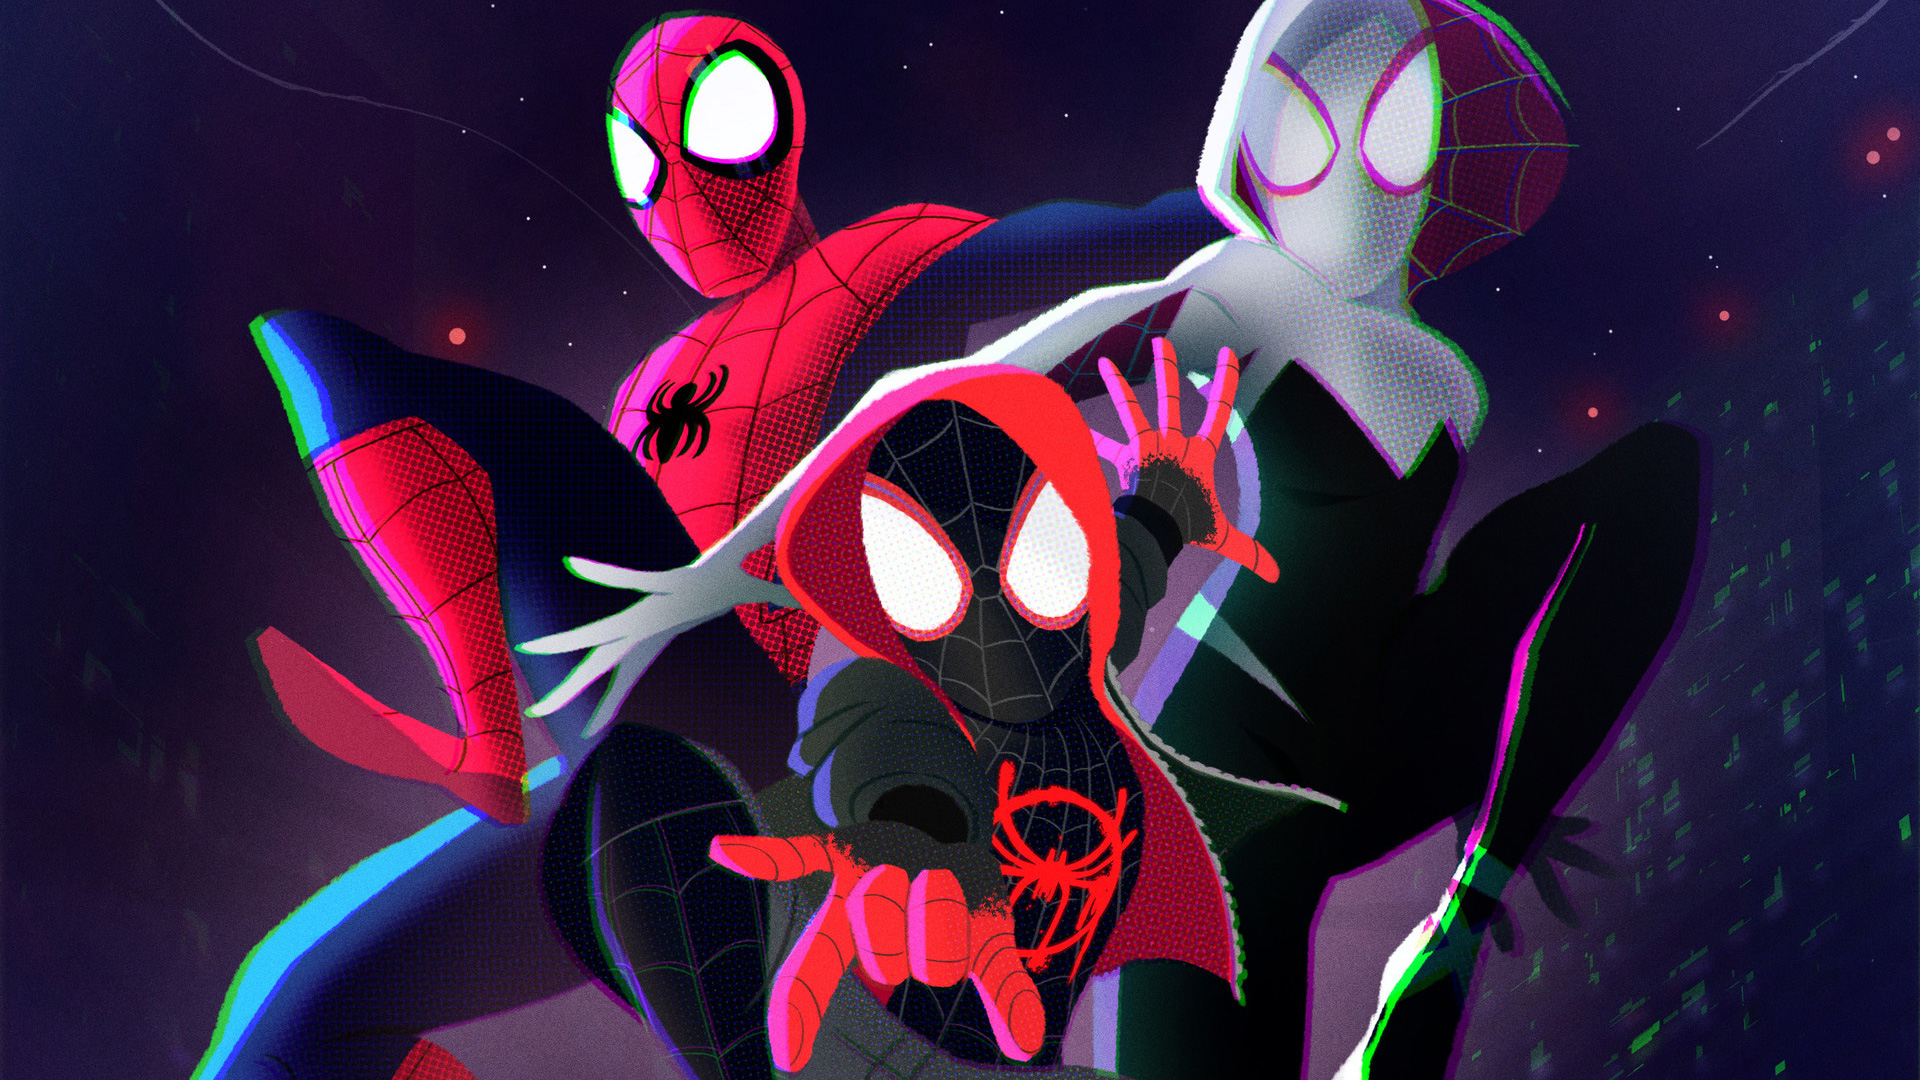 SpiderMan Into The Spider Verse 2018 Art, HD Movies, 4k Wallpapers, Images, Backgrounds, Photos